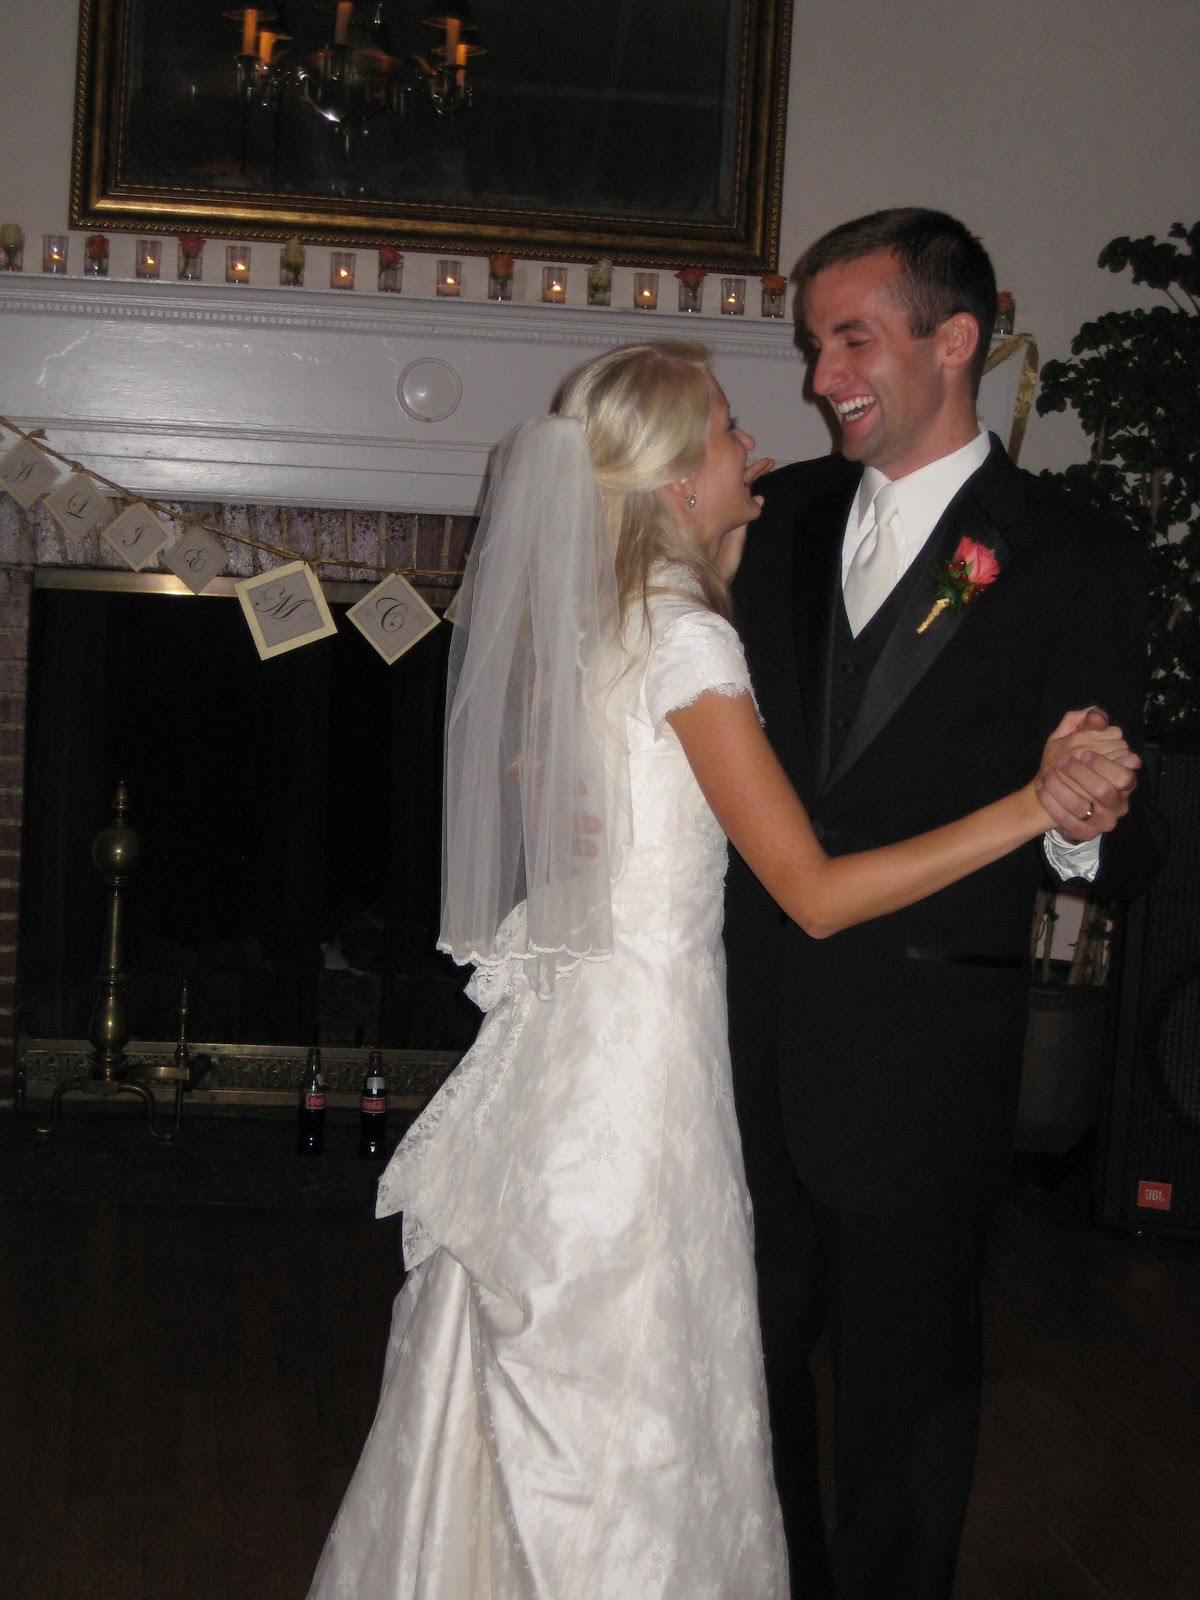 Amy and Thomas: October 2010